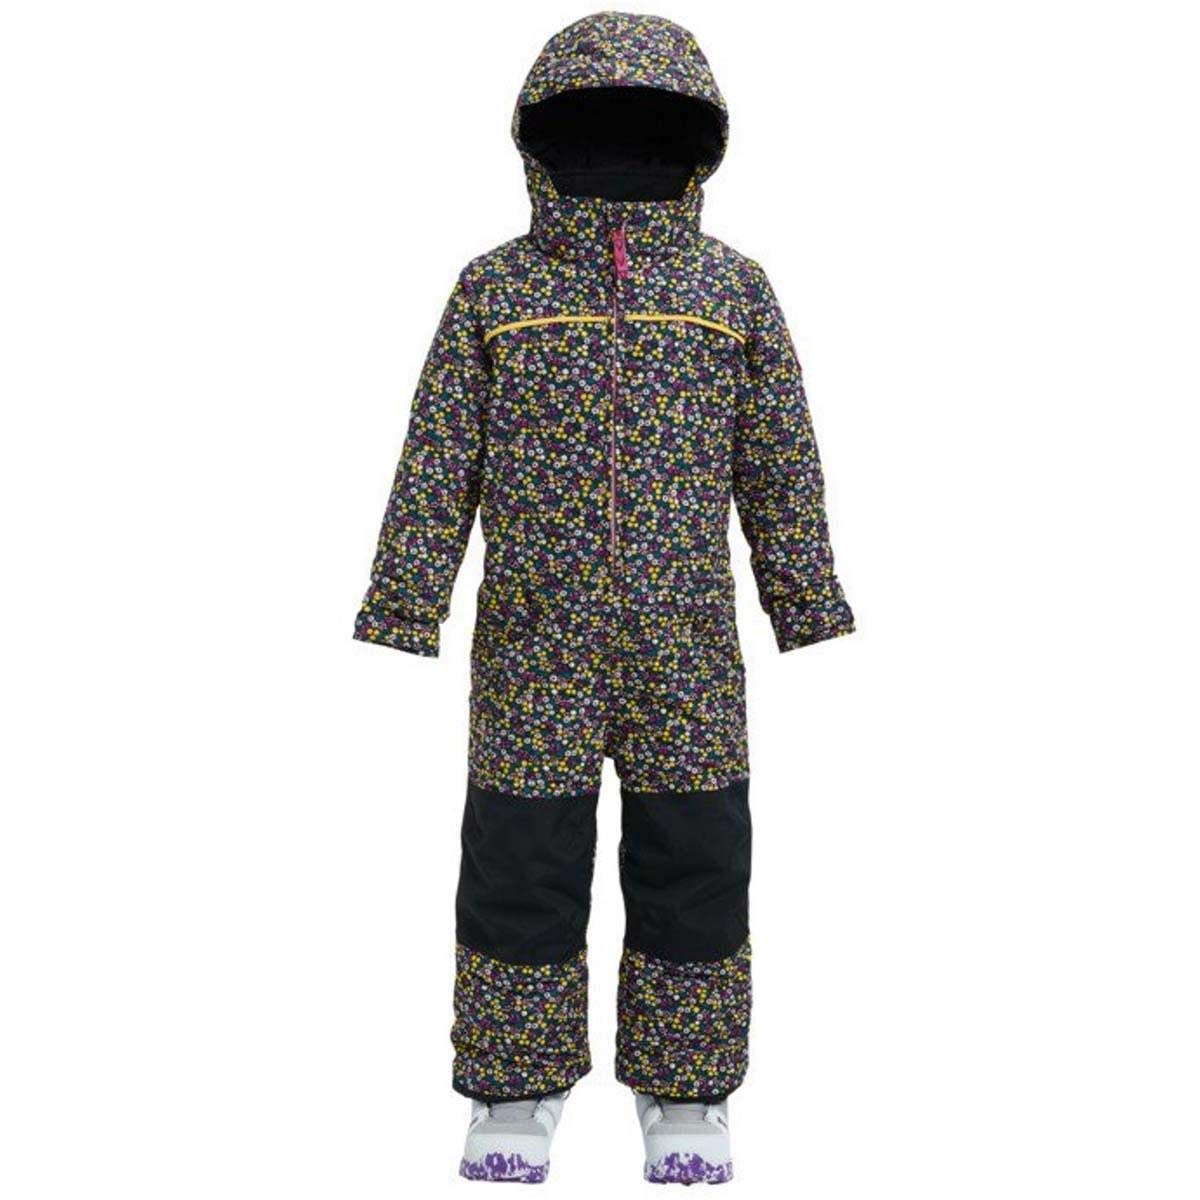 Burton Girls Minishred Illusion Onepiece, Forget Me Not, 18-24m